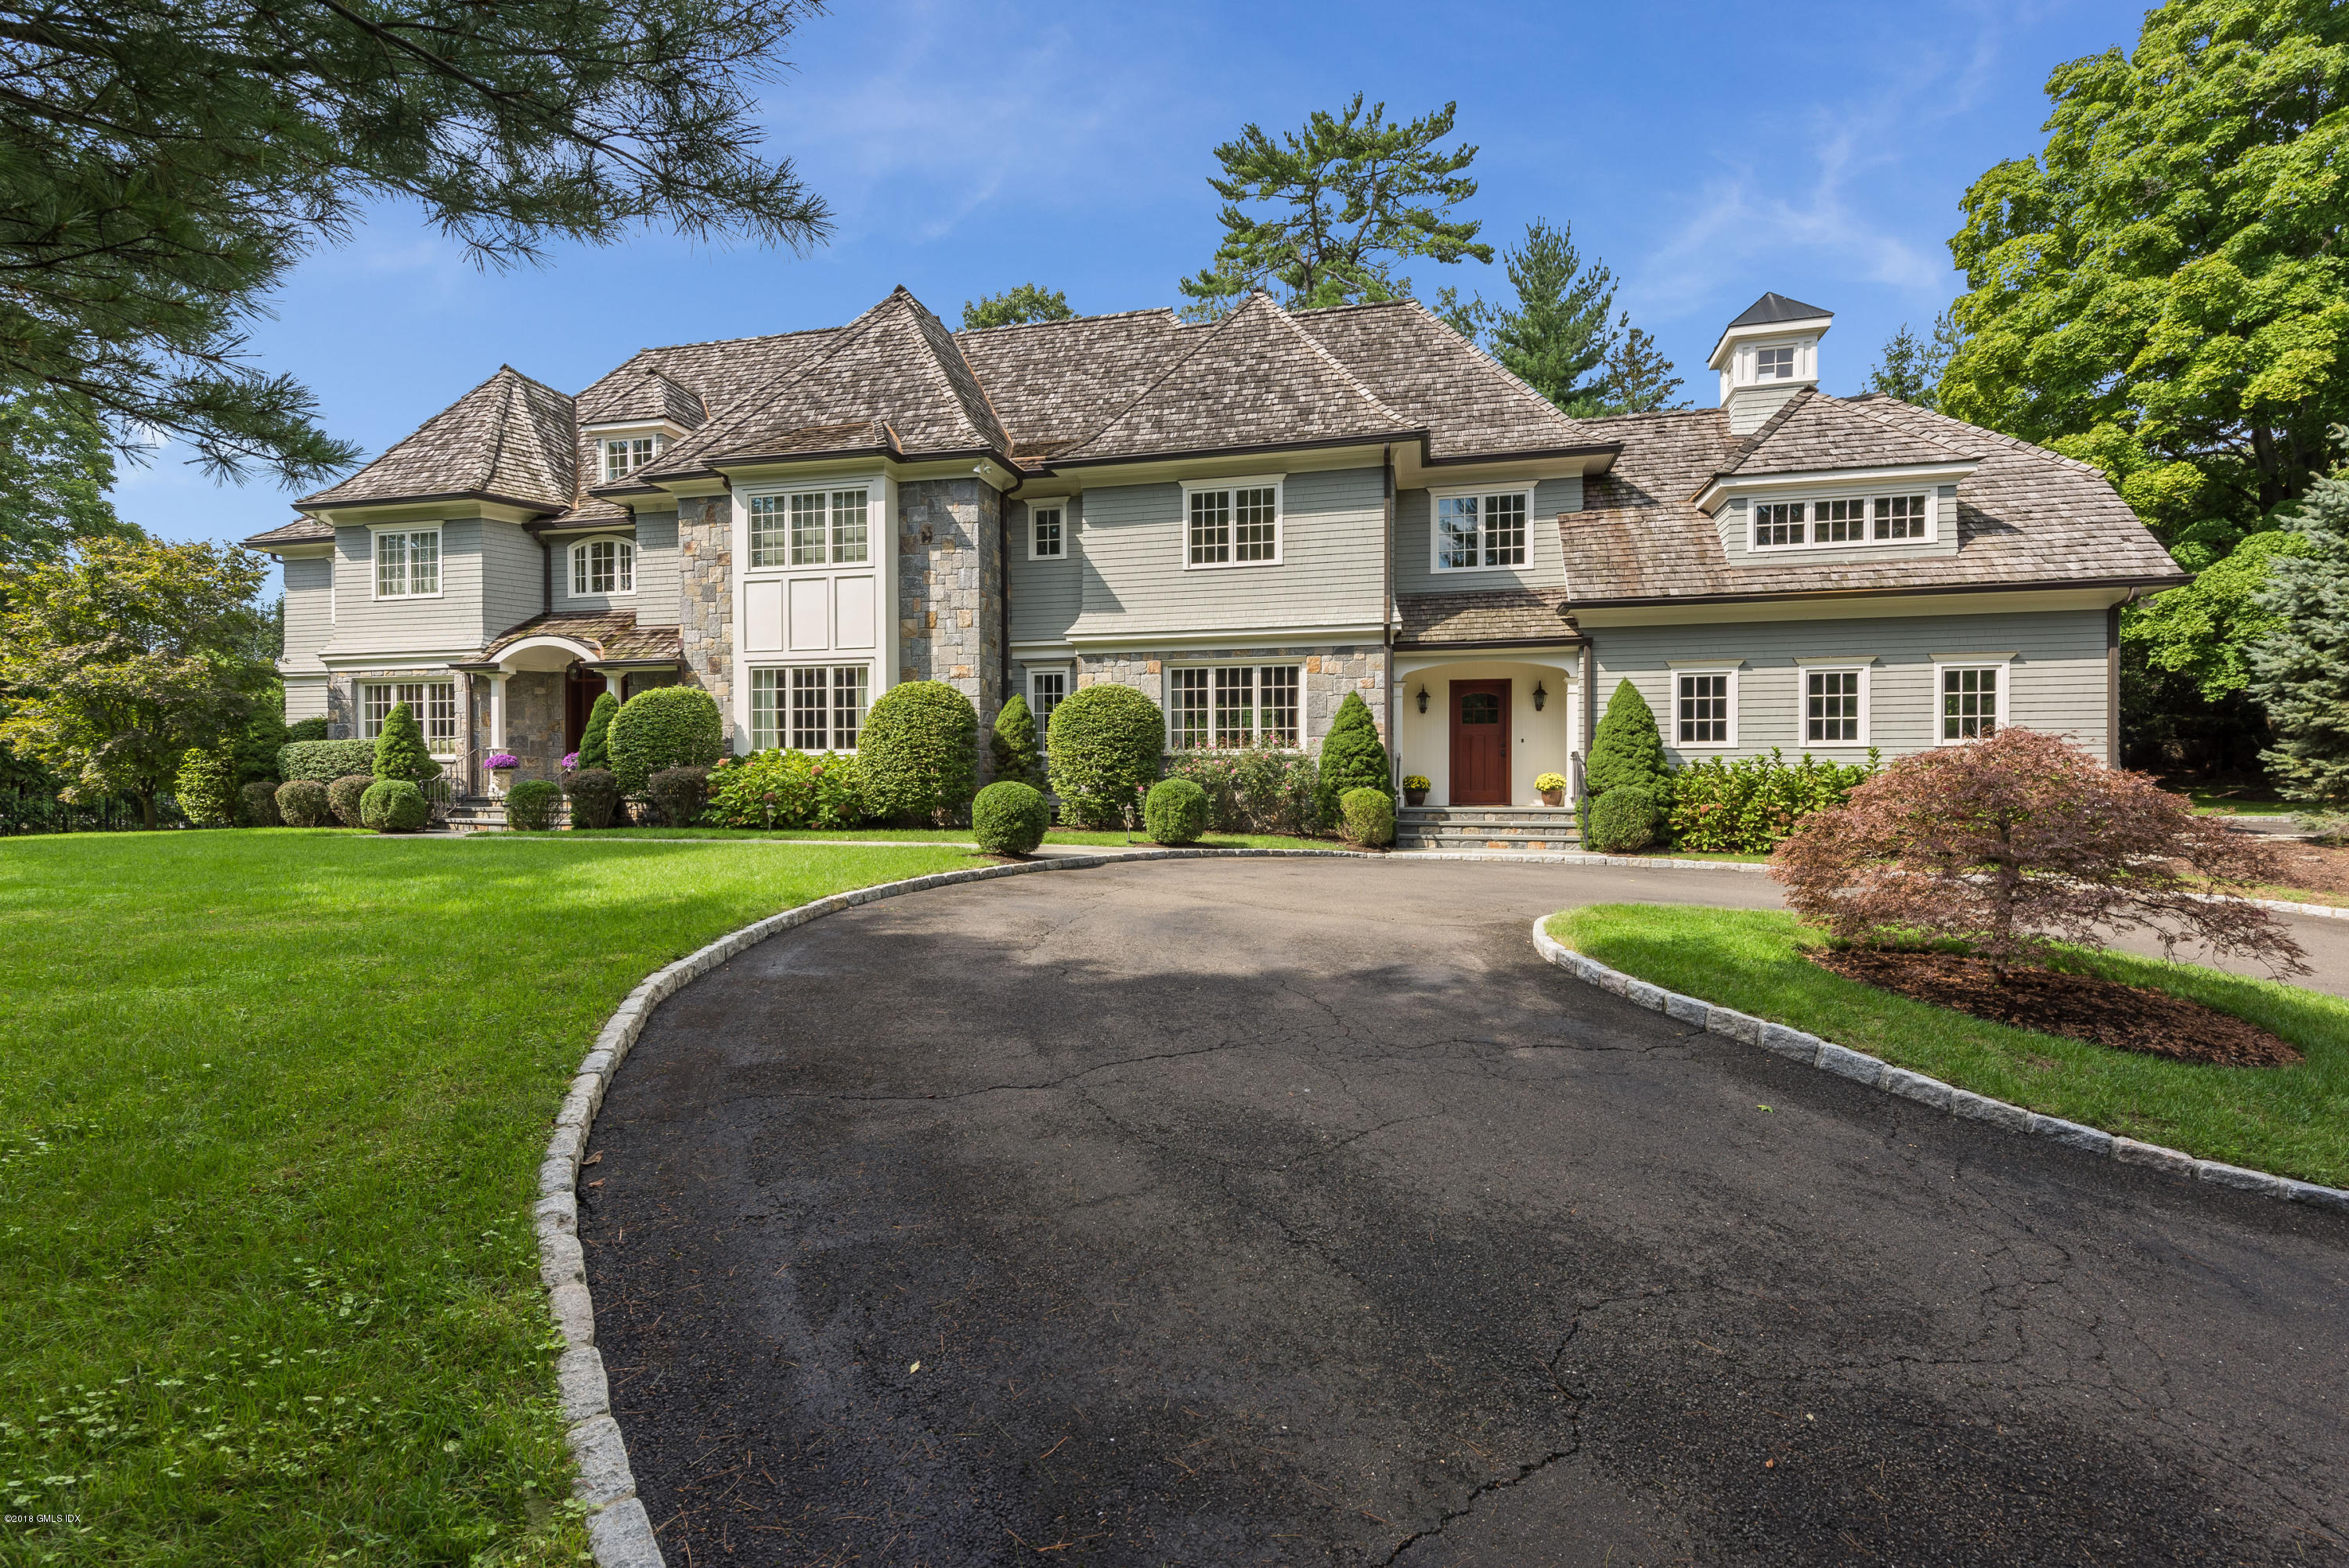 80 Doubling Road,Greenwich,Connecticut 06830,5 Bedrooms Bedrooms,6 BathroomsBathrooms,Single family,Doubling,104416